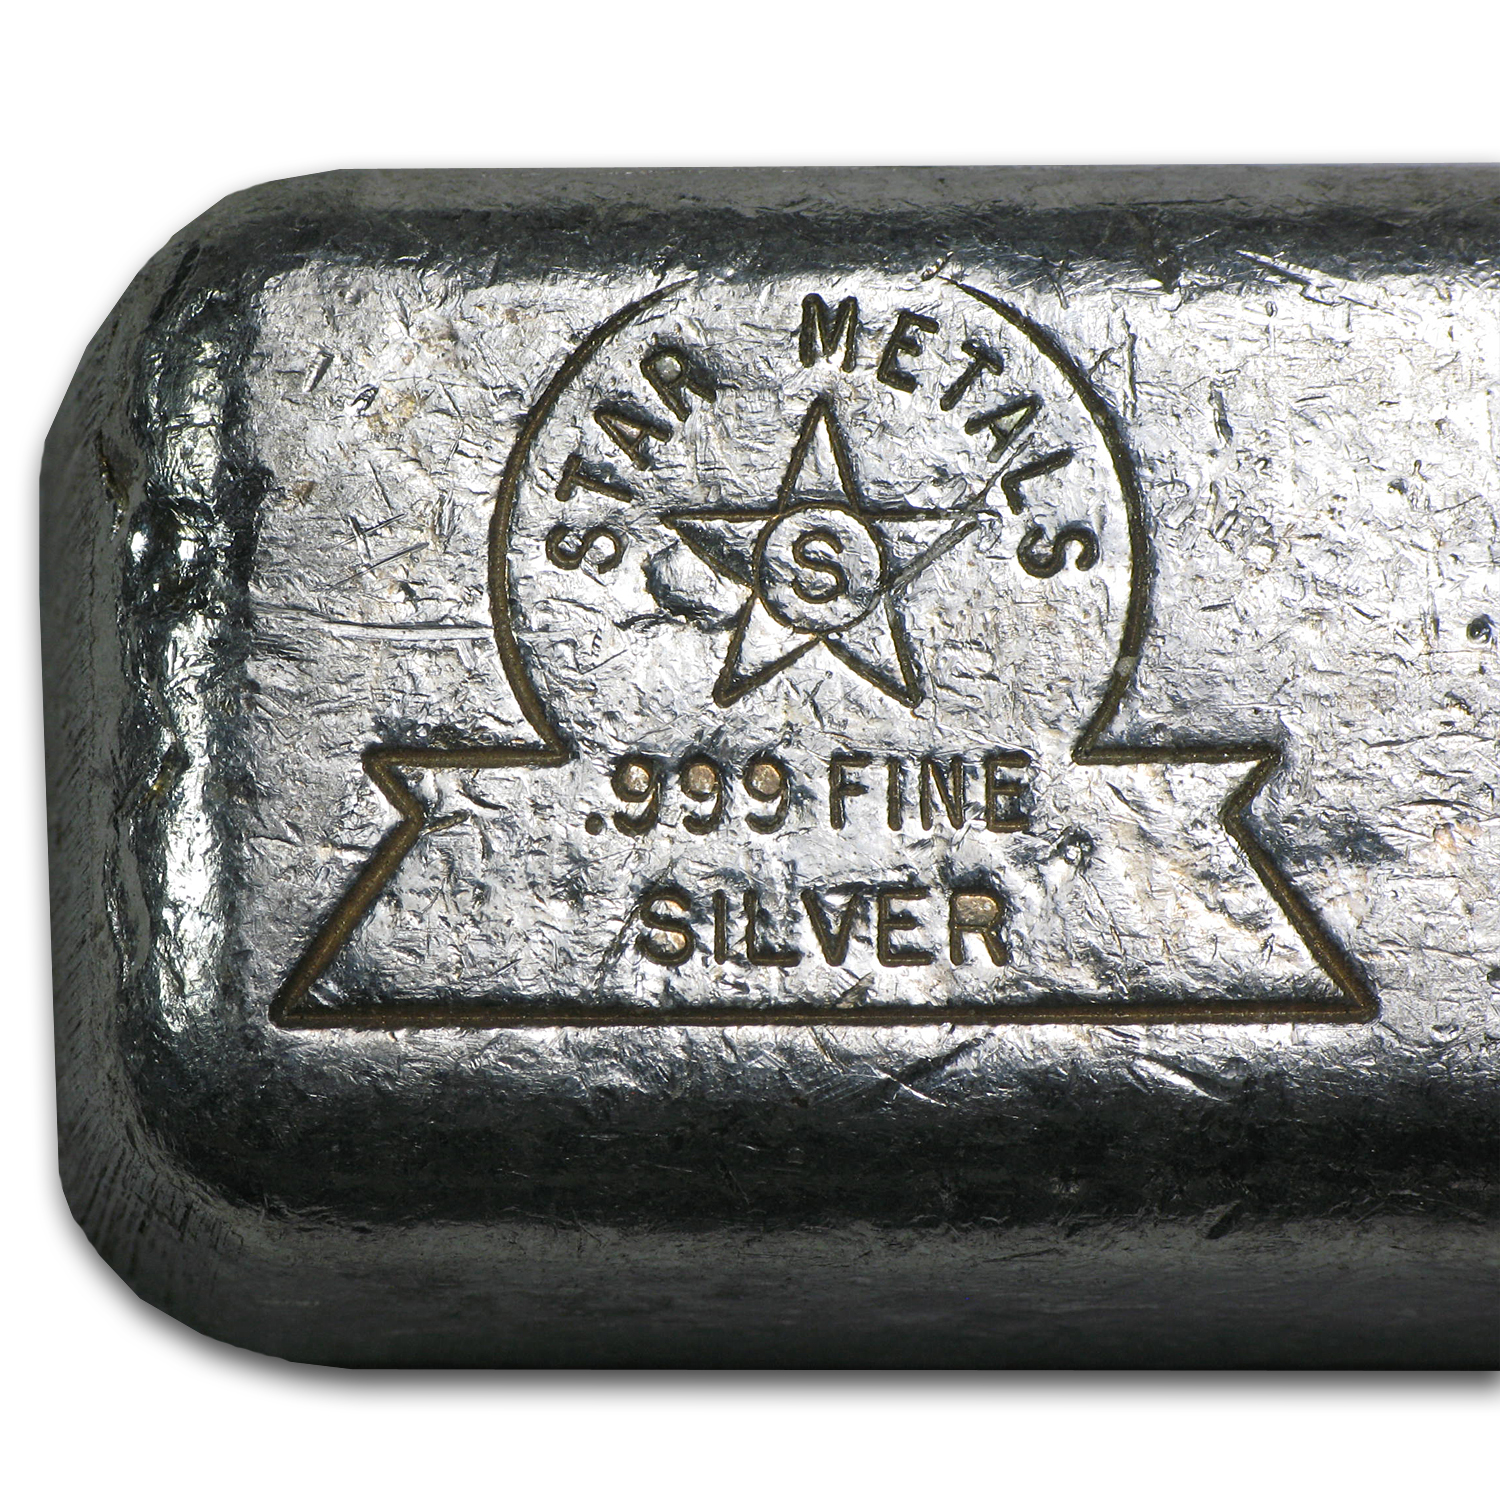 9.39 oz Silver Bars - Star Metals